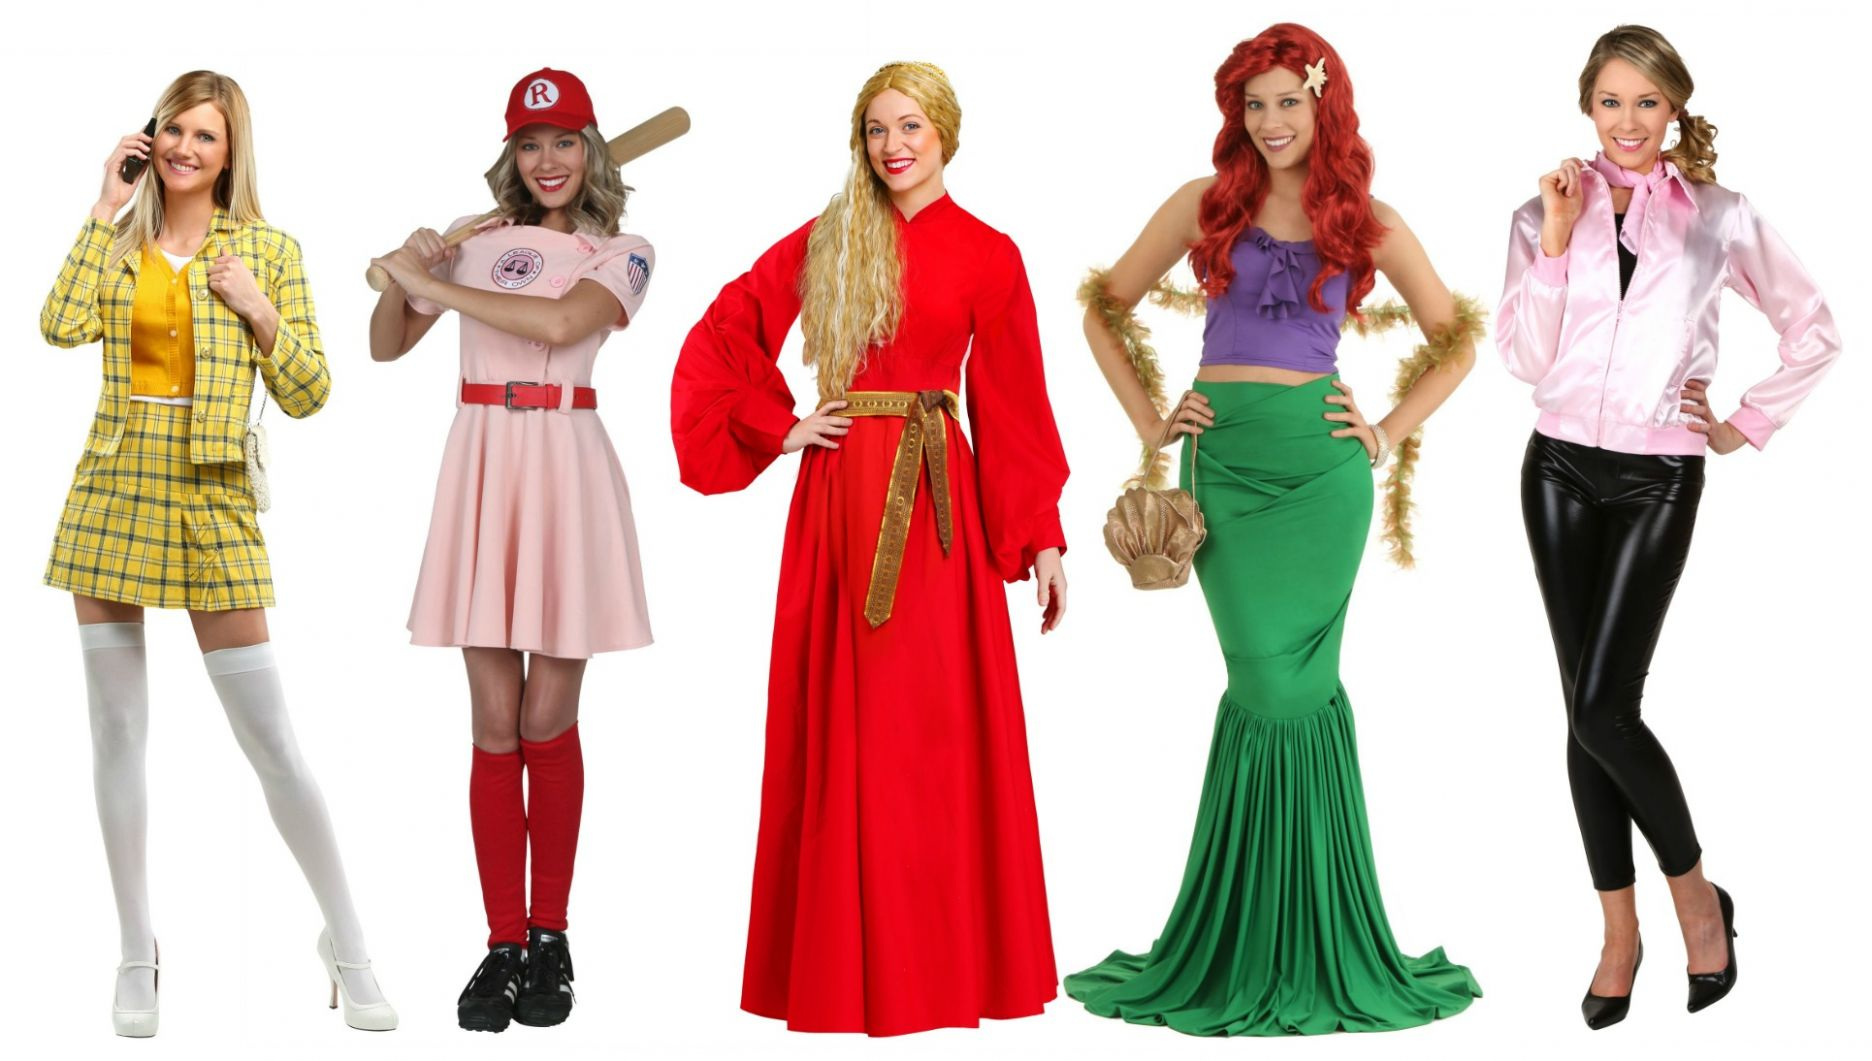 Halloween Dress Up: Costume Ideas for All Ages - Fun